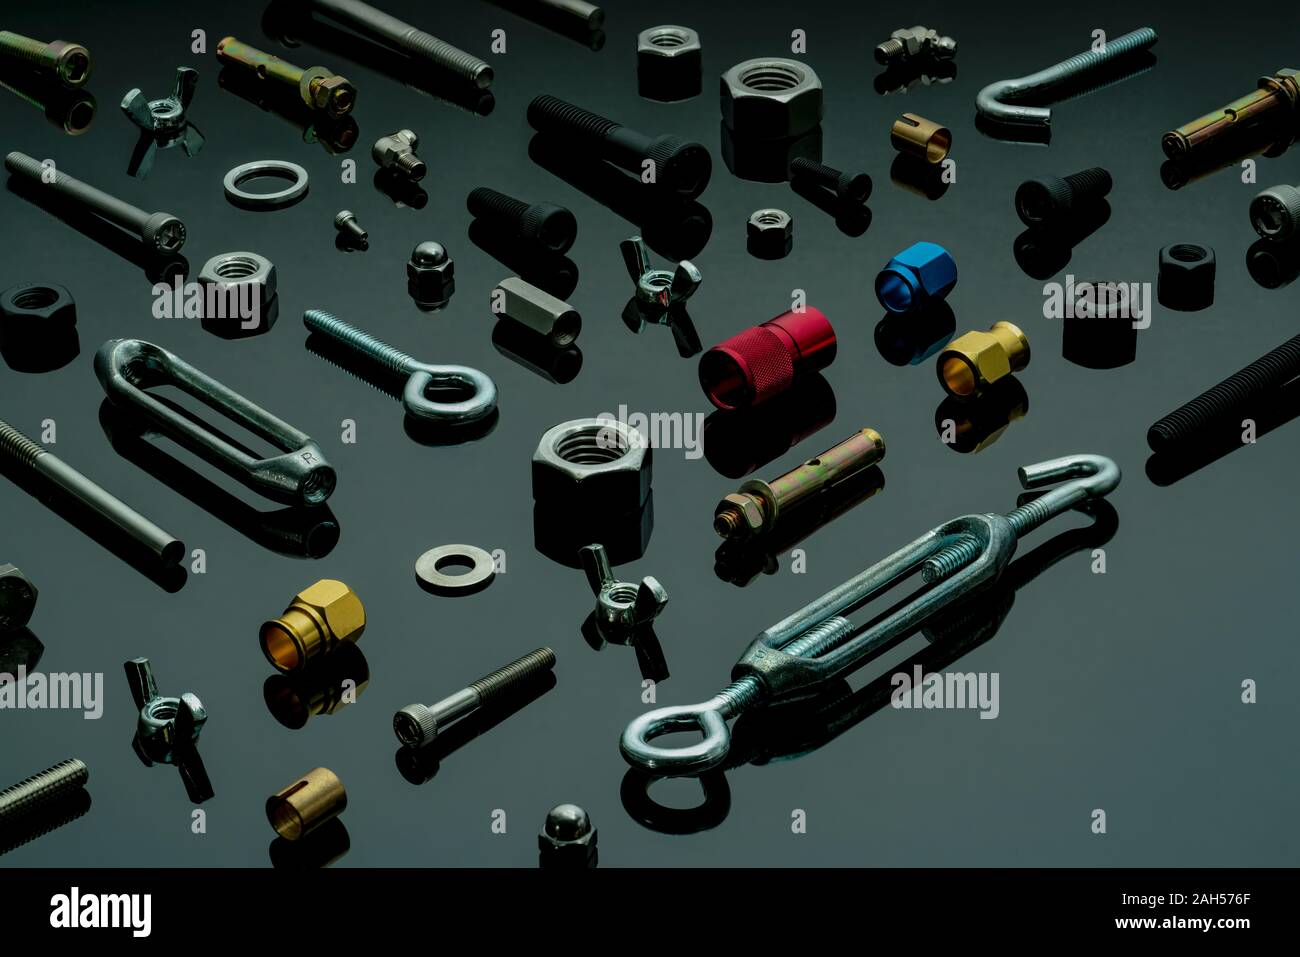 Screws Head Nut Bolt And Washer High Resolution Stock Photography And Images Alamy